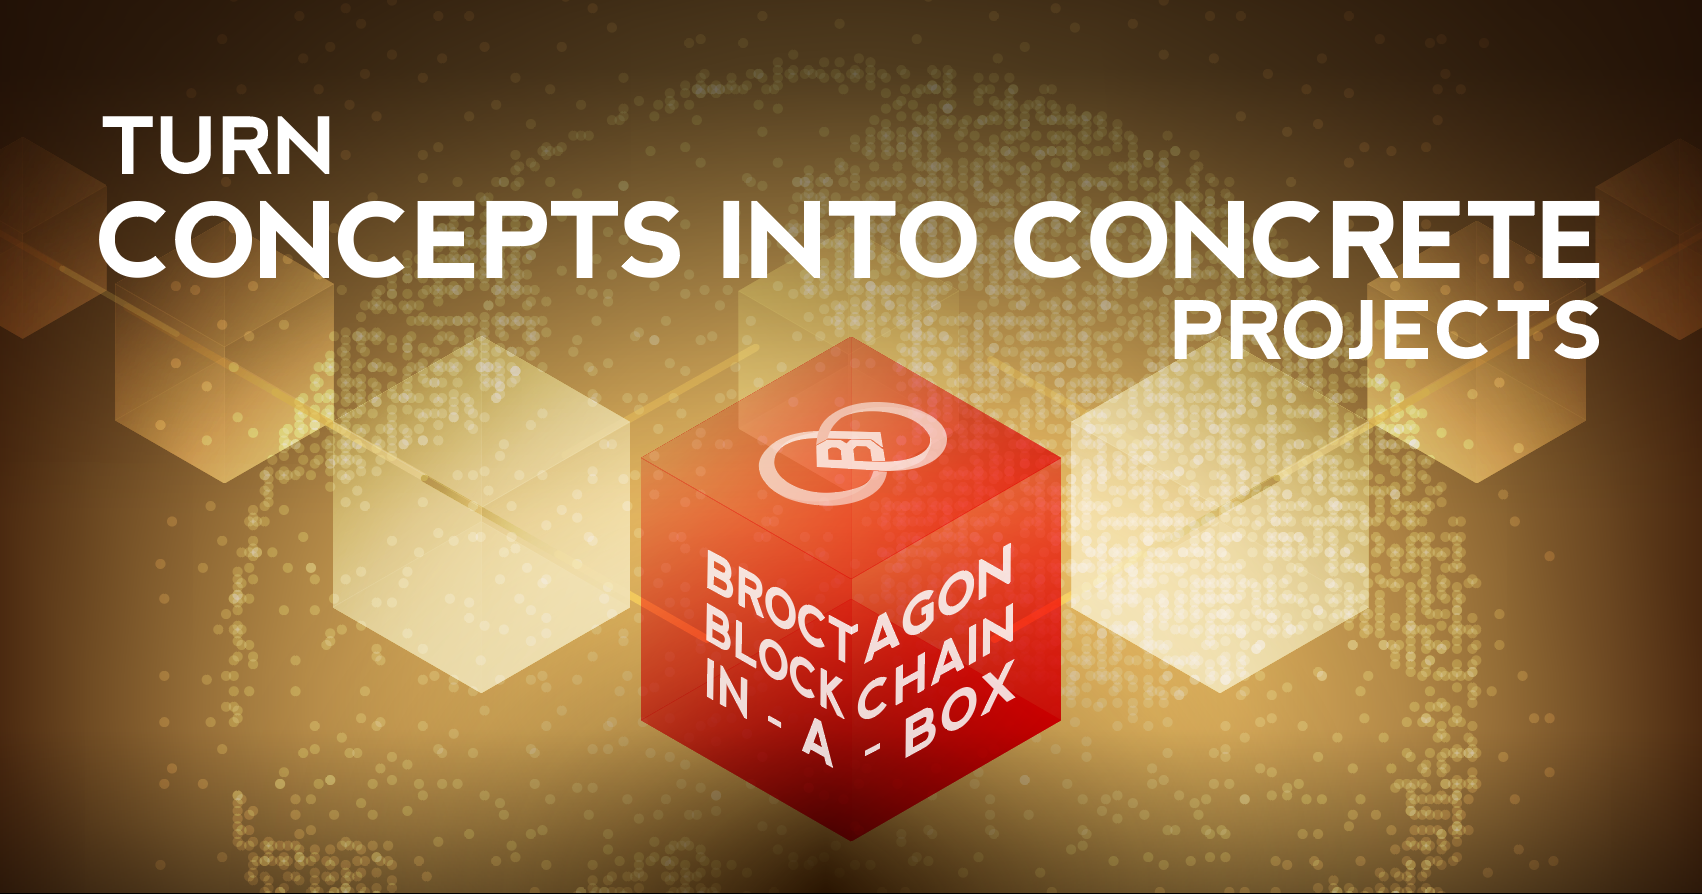 Broctagon's blockchain in a box